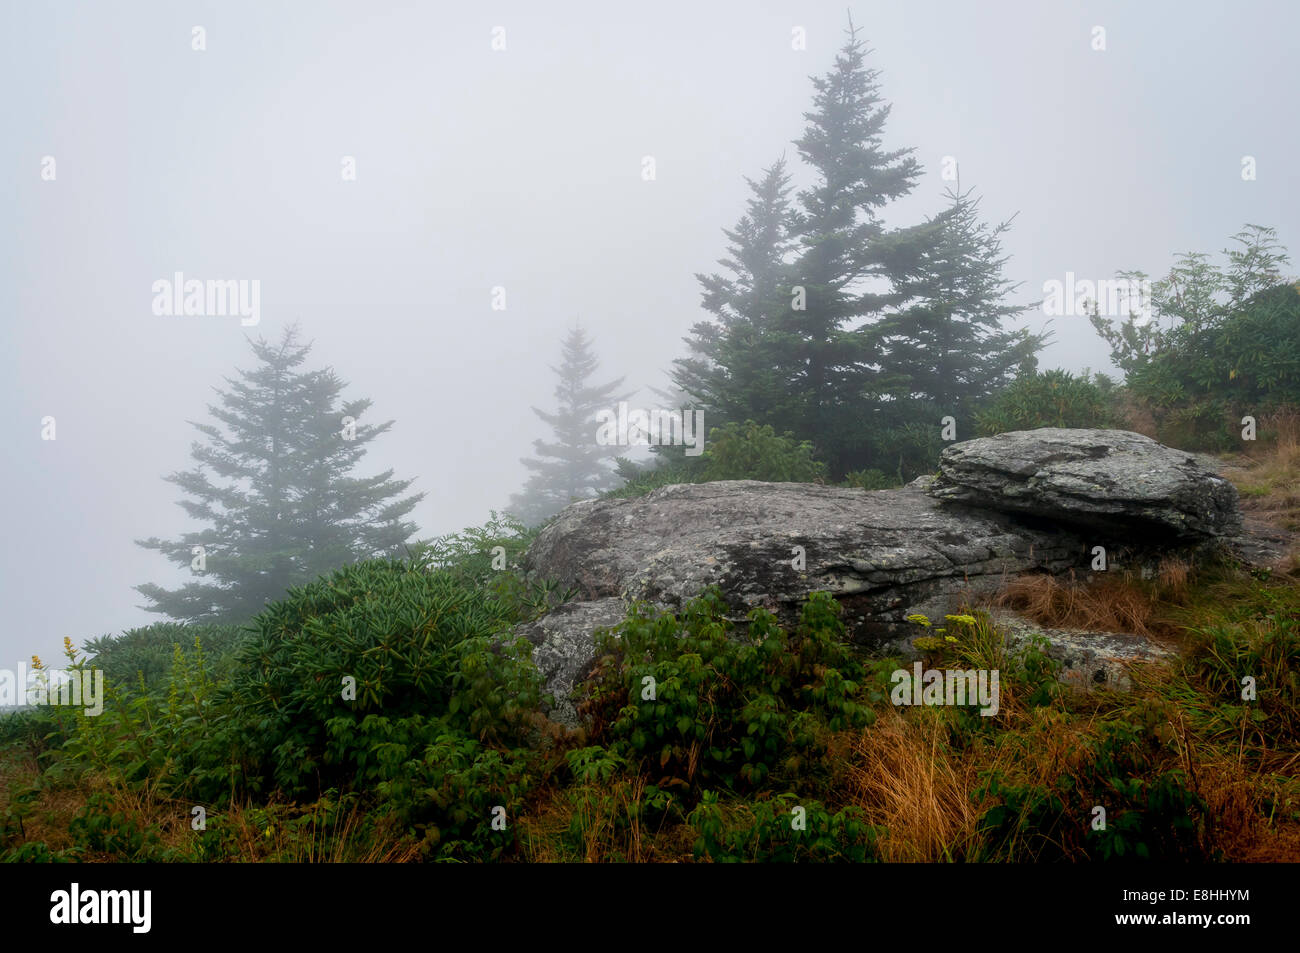 Spruce trees on a foggy morning on Roan Mountain in Pisgah National Forest, North Carolina,USA. - Stock Image